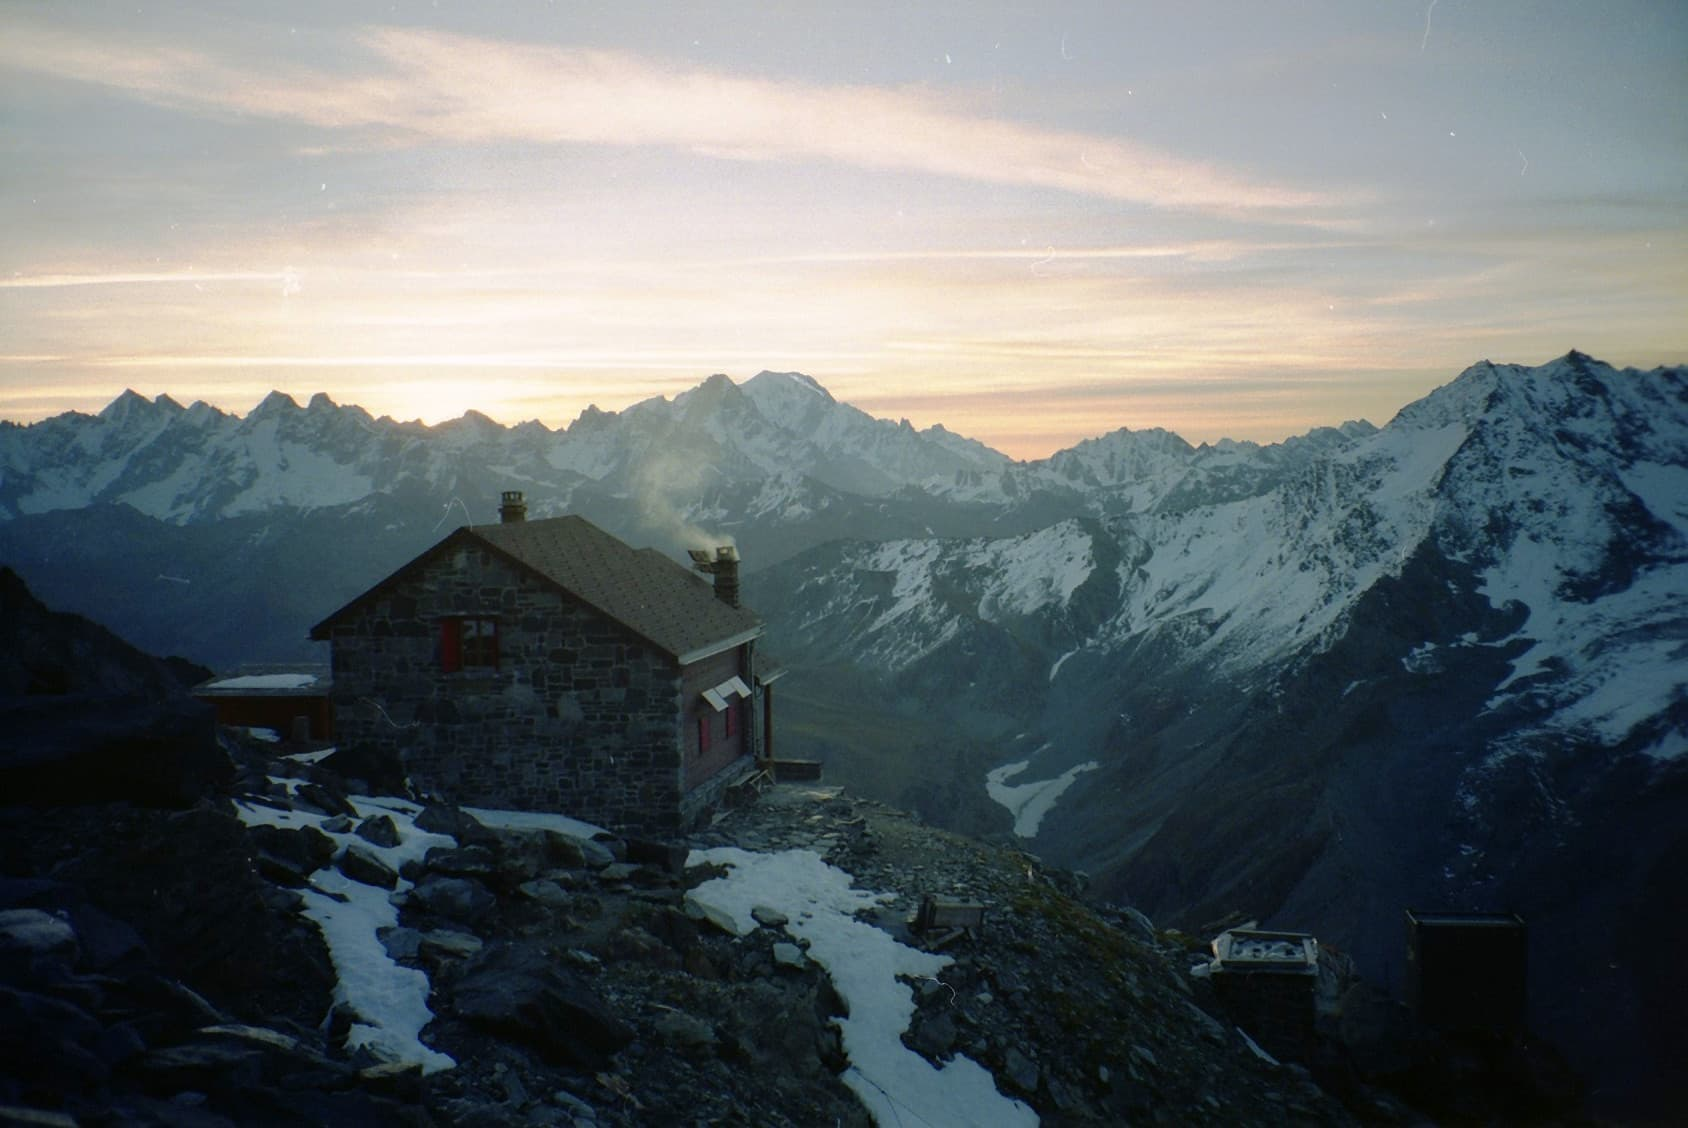 Mountain - Grand Combin house in mountain at sunset